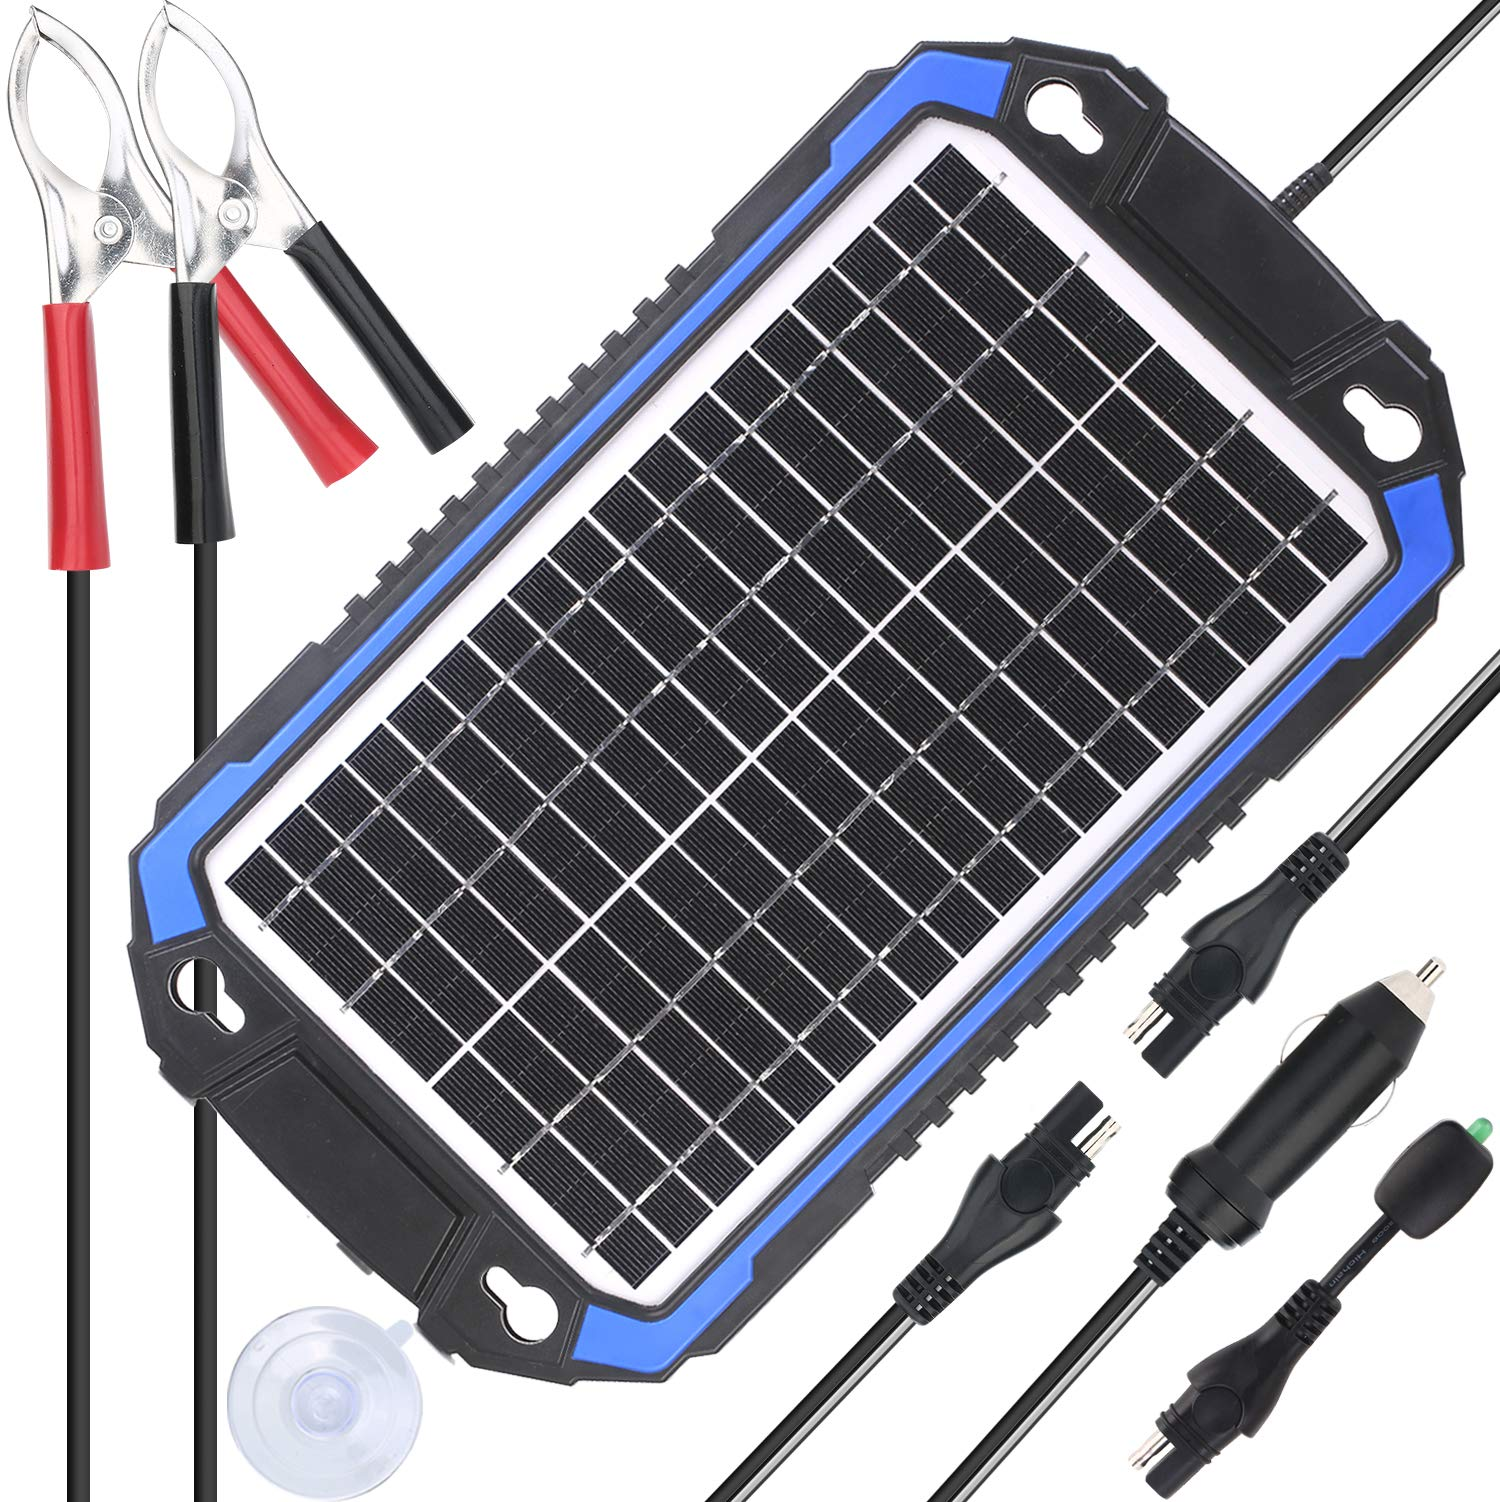 SUNER POWER 12V Solar Car Battery Charger & Maintainer - Portable 8W Solar Panel Trickle Charging Kit for Automotive, Motorcycle, Boat, Marine, RV, Trailer, Powersports, Snowmobile, etc. by SUNER POWER